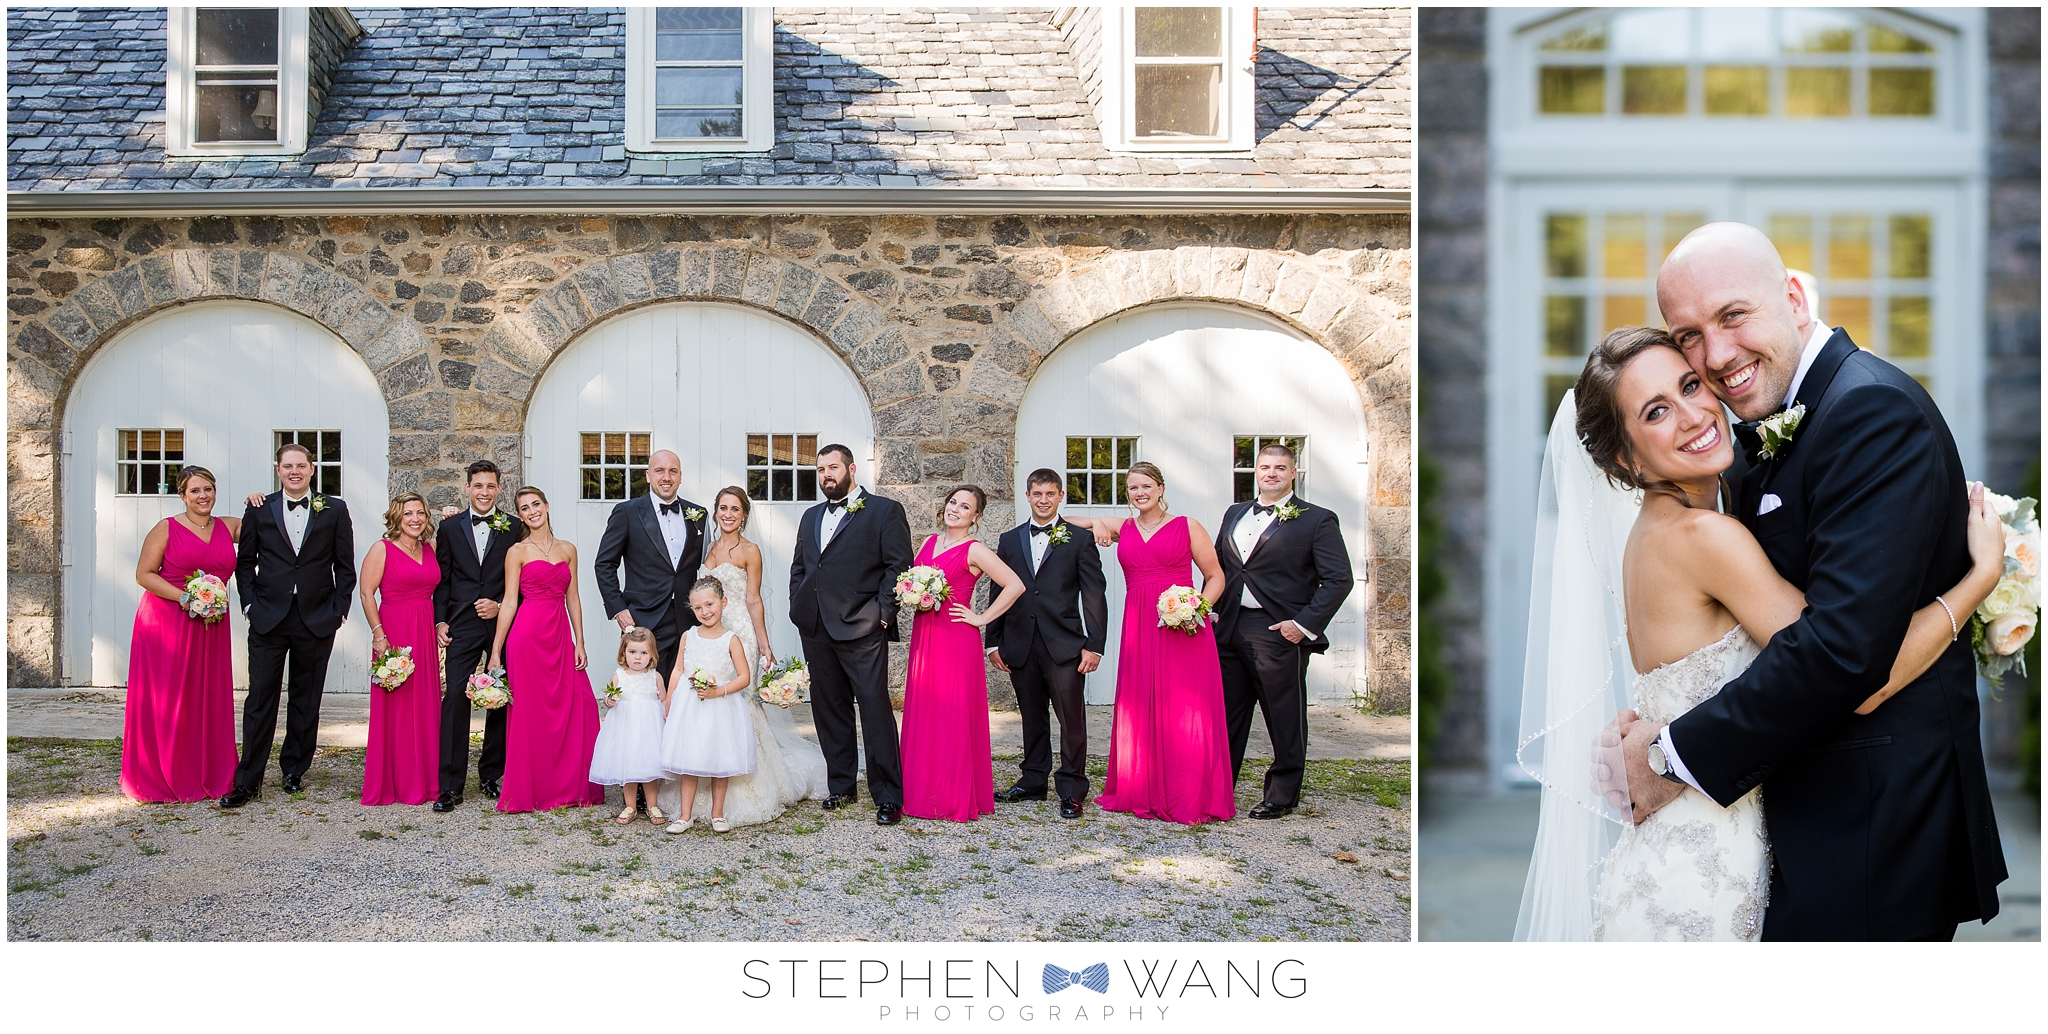 Stephen Wang Photography wedding photographer whitby castle wedding rye ny connecticut photographer philadlephia photographer pennsylvania wedding photographer bride and groom00020.jpg